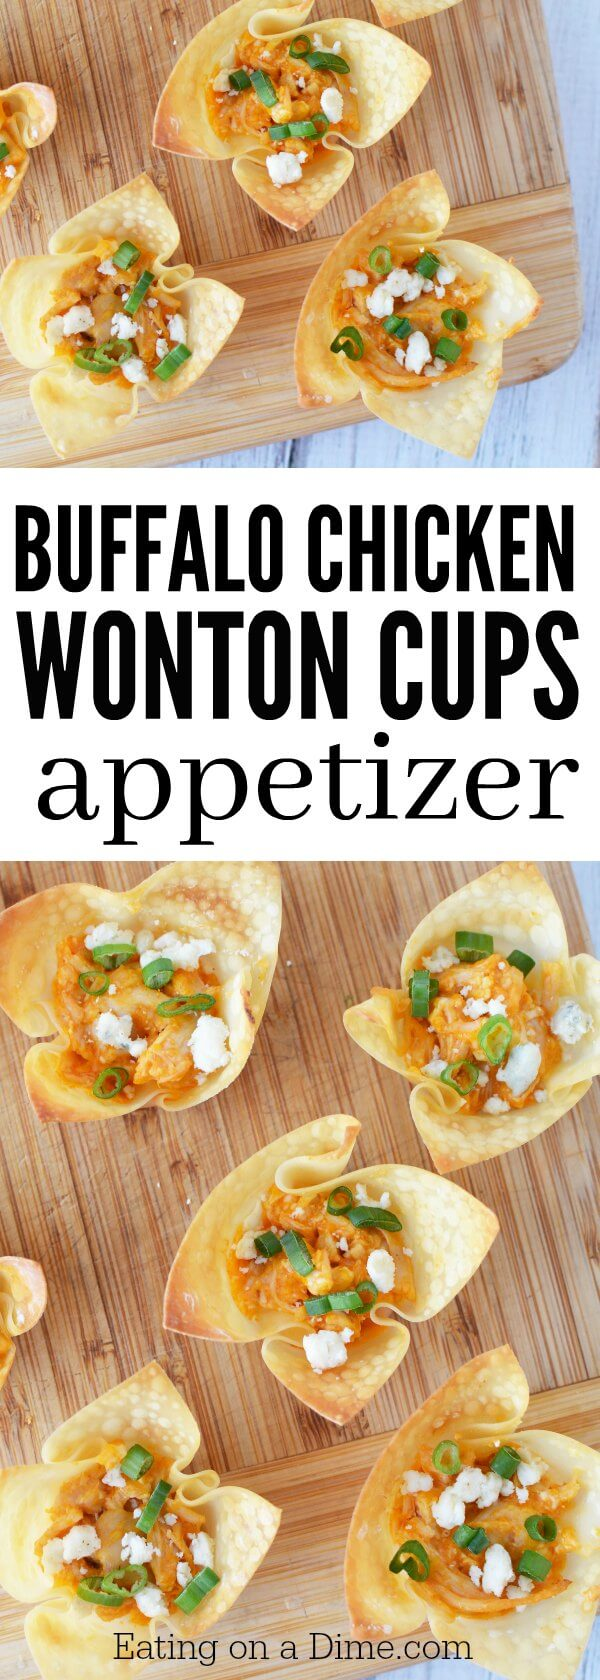 Try this Buffalo Chicken Wonton Cups Recipe! Wonton appetizers are perfect for parties. Add this to your list of party snack ideas. So delicious!